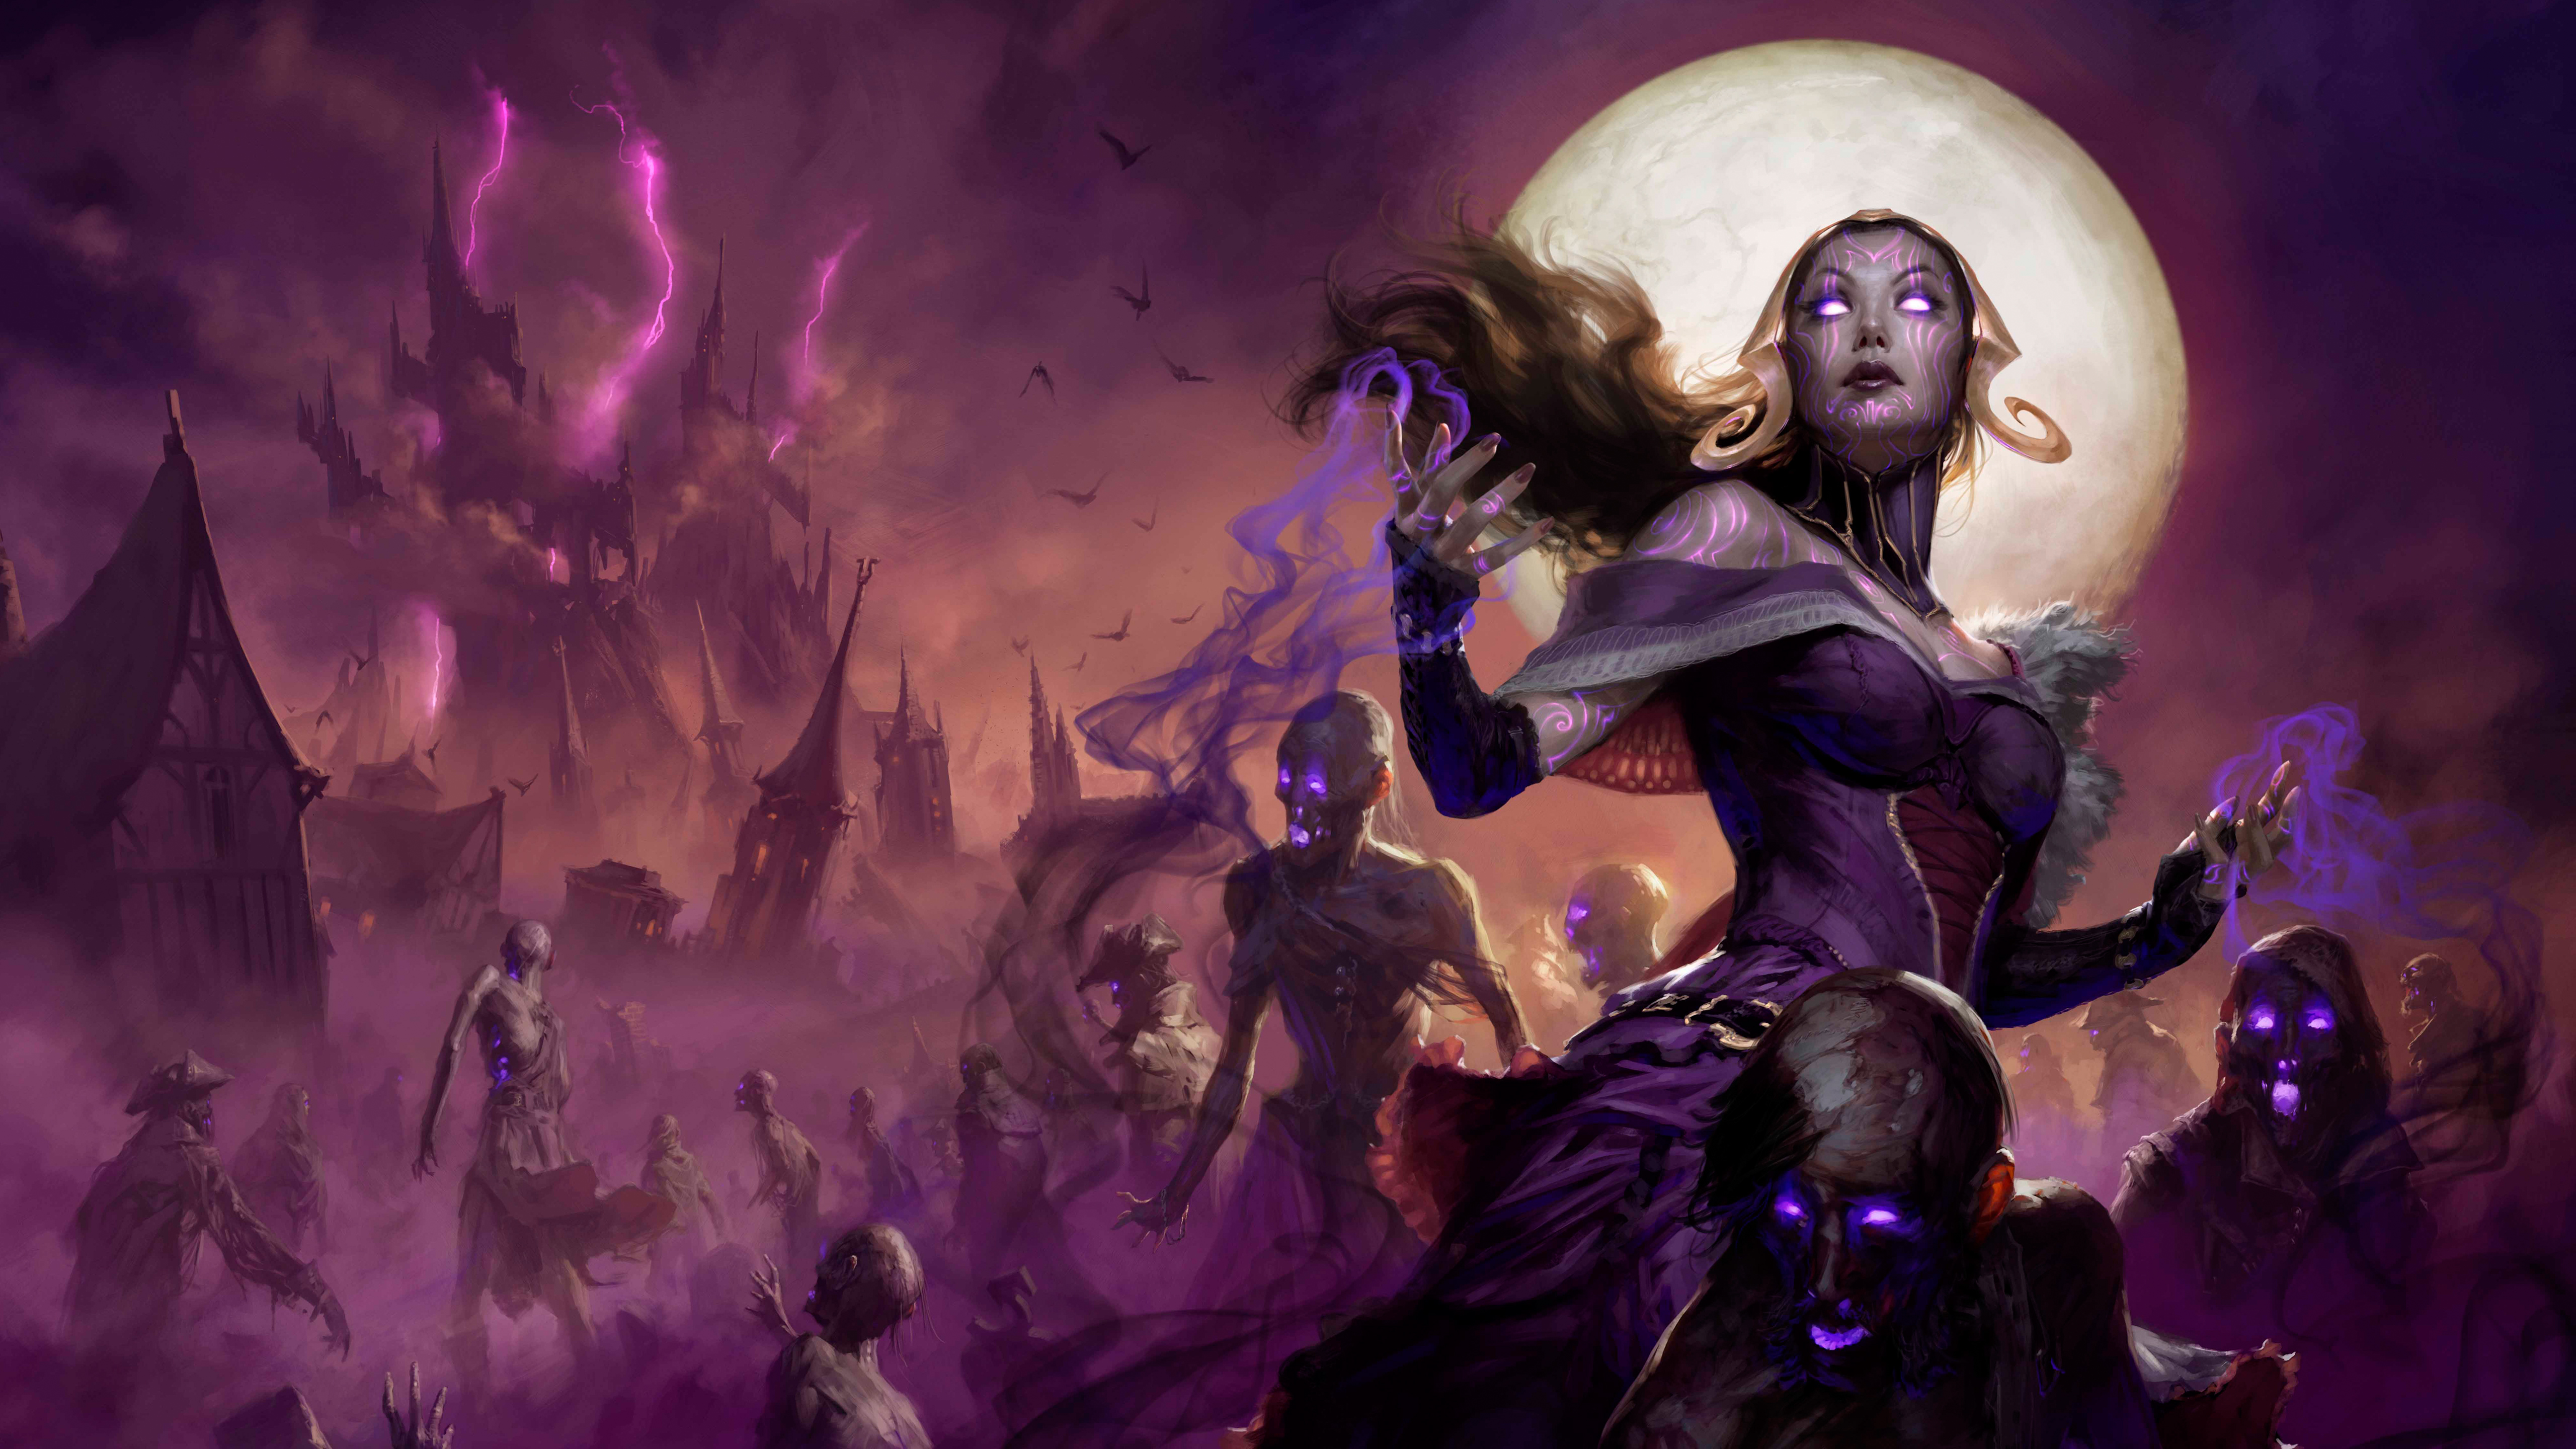 2019 Magic The Gathering Arena 5k Hd Games 4k Wallpapers Images